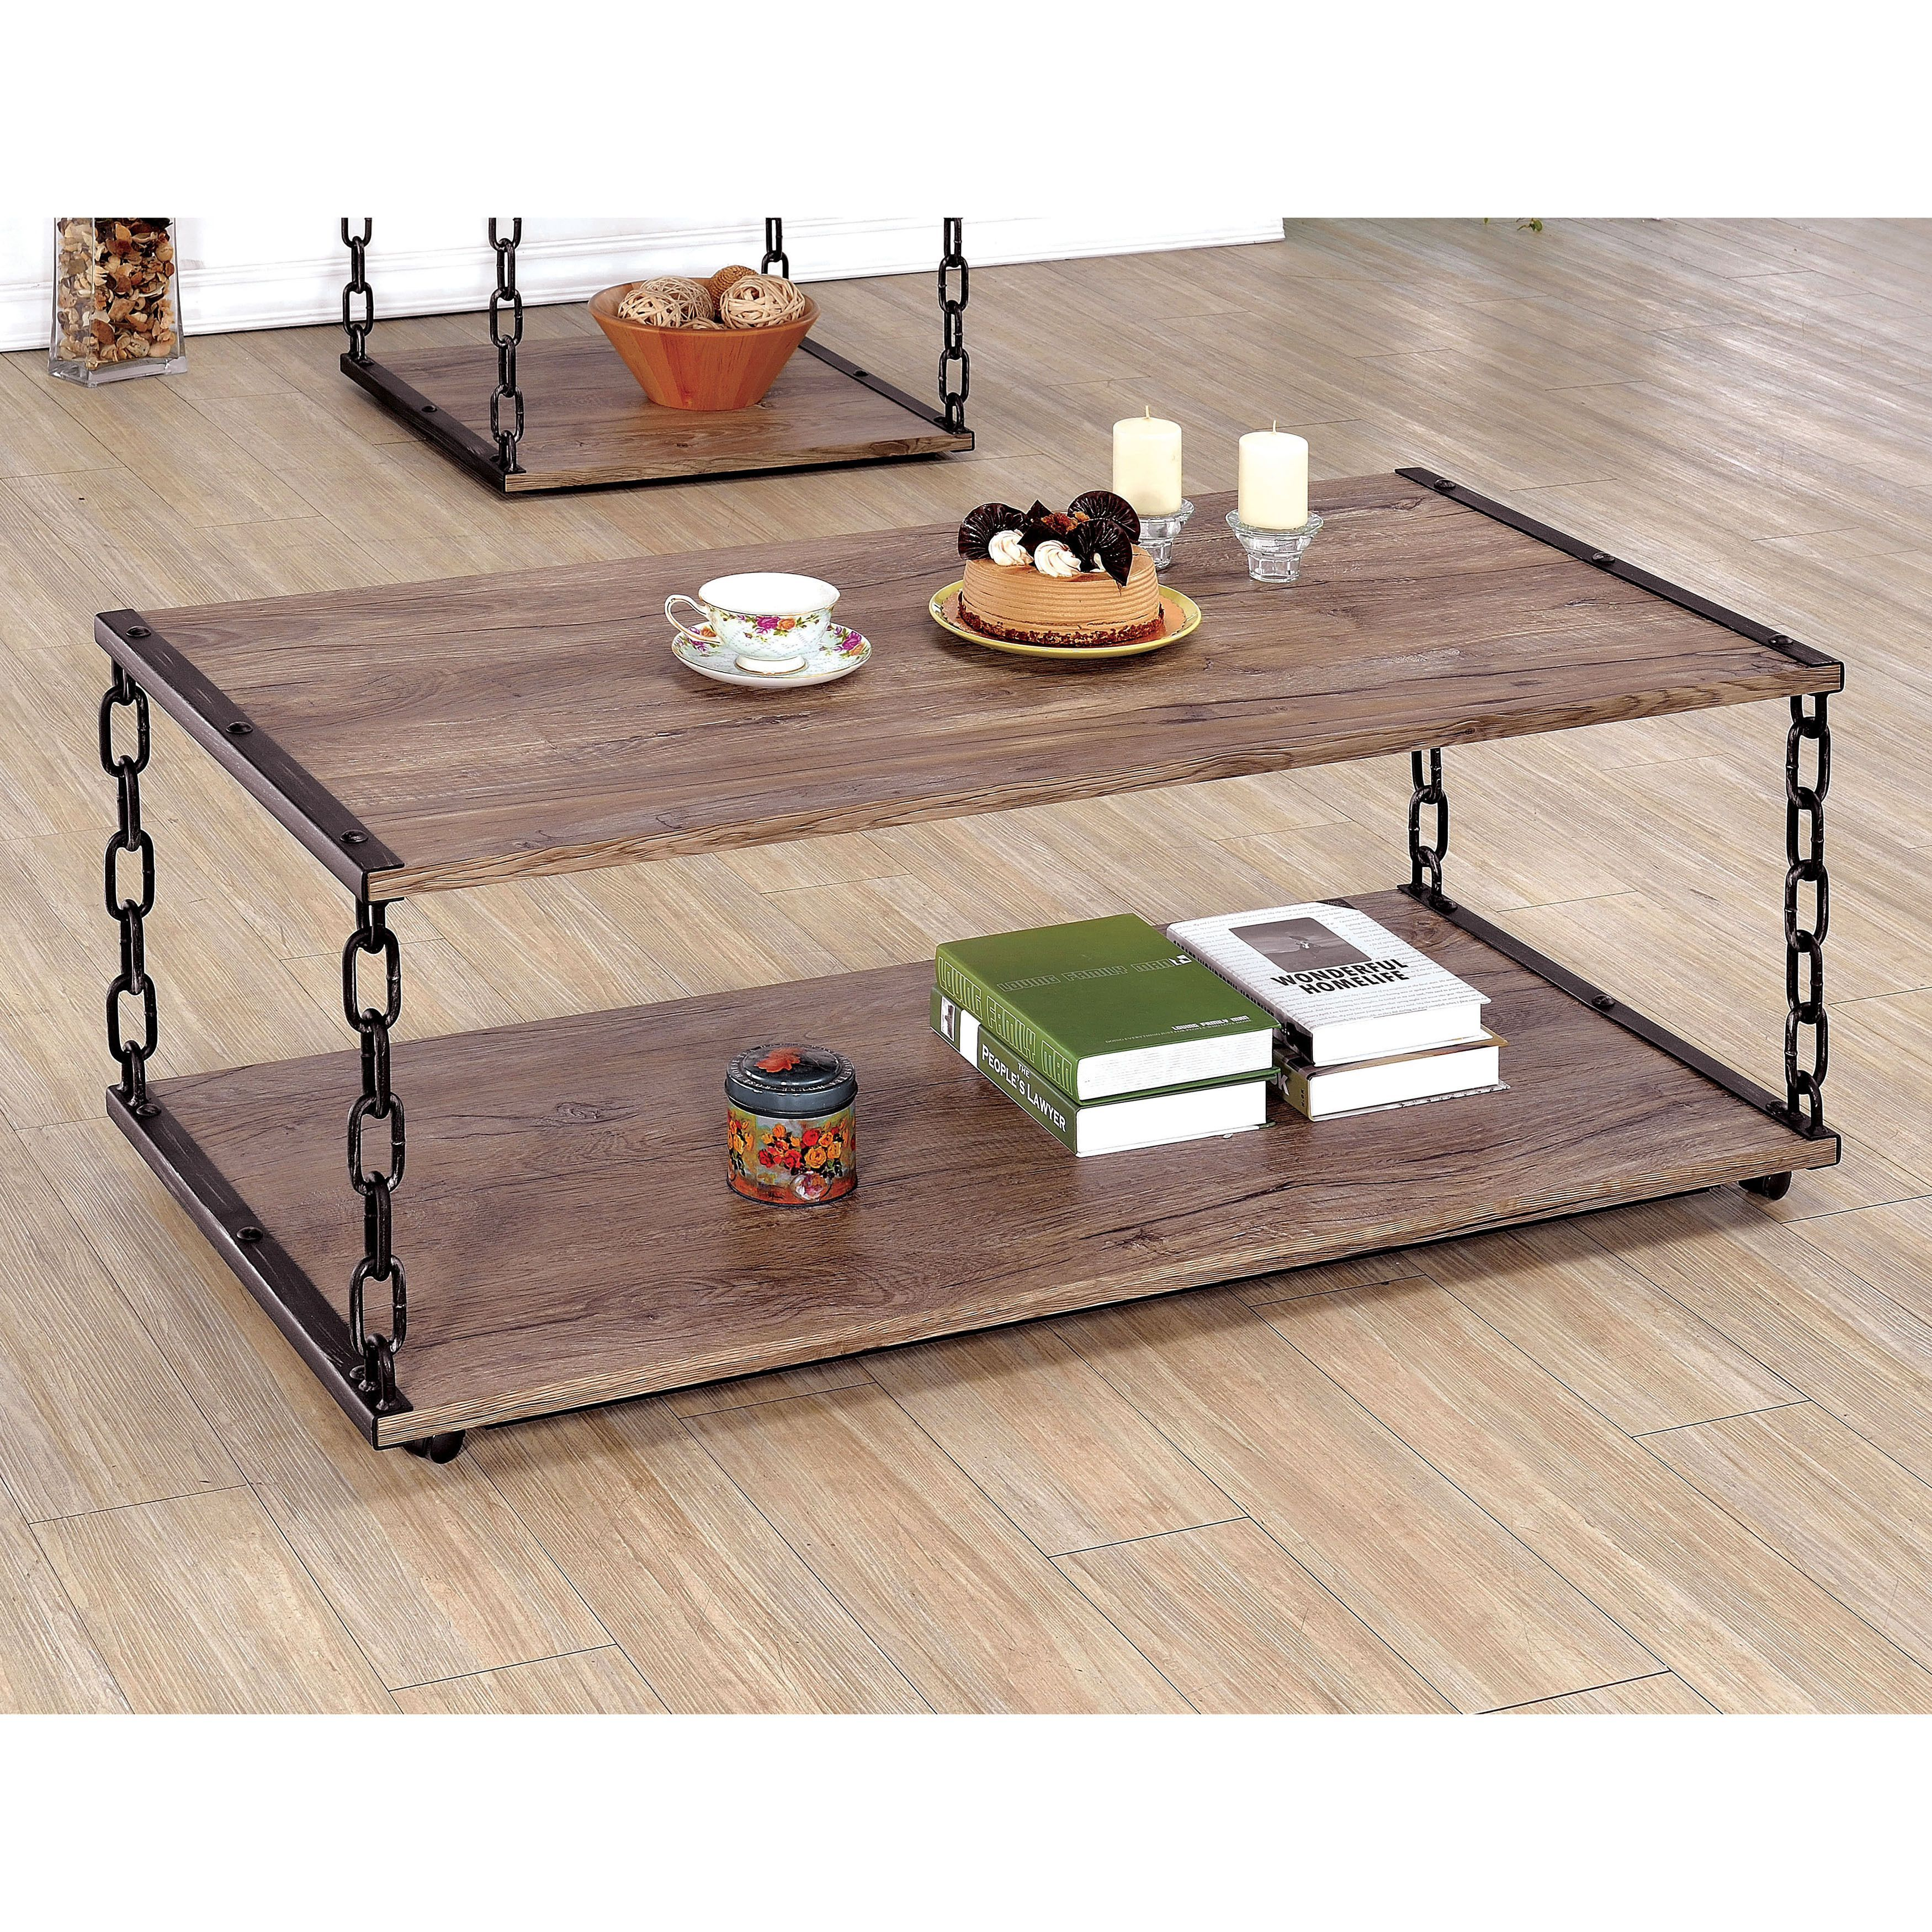 Create A Living Space With Unparalleled Style By Placing This Two Tone Industrial Inspired Coffee T Diy Coffee Table Coffee Table Farmhouse Coffee Table Design [ 3500 x 3500 Pixel ]